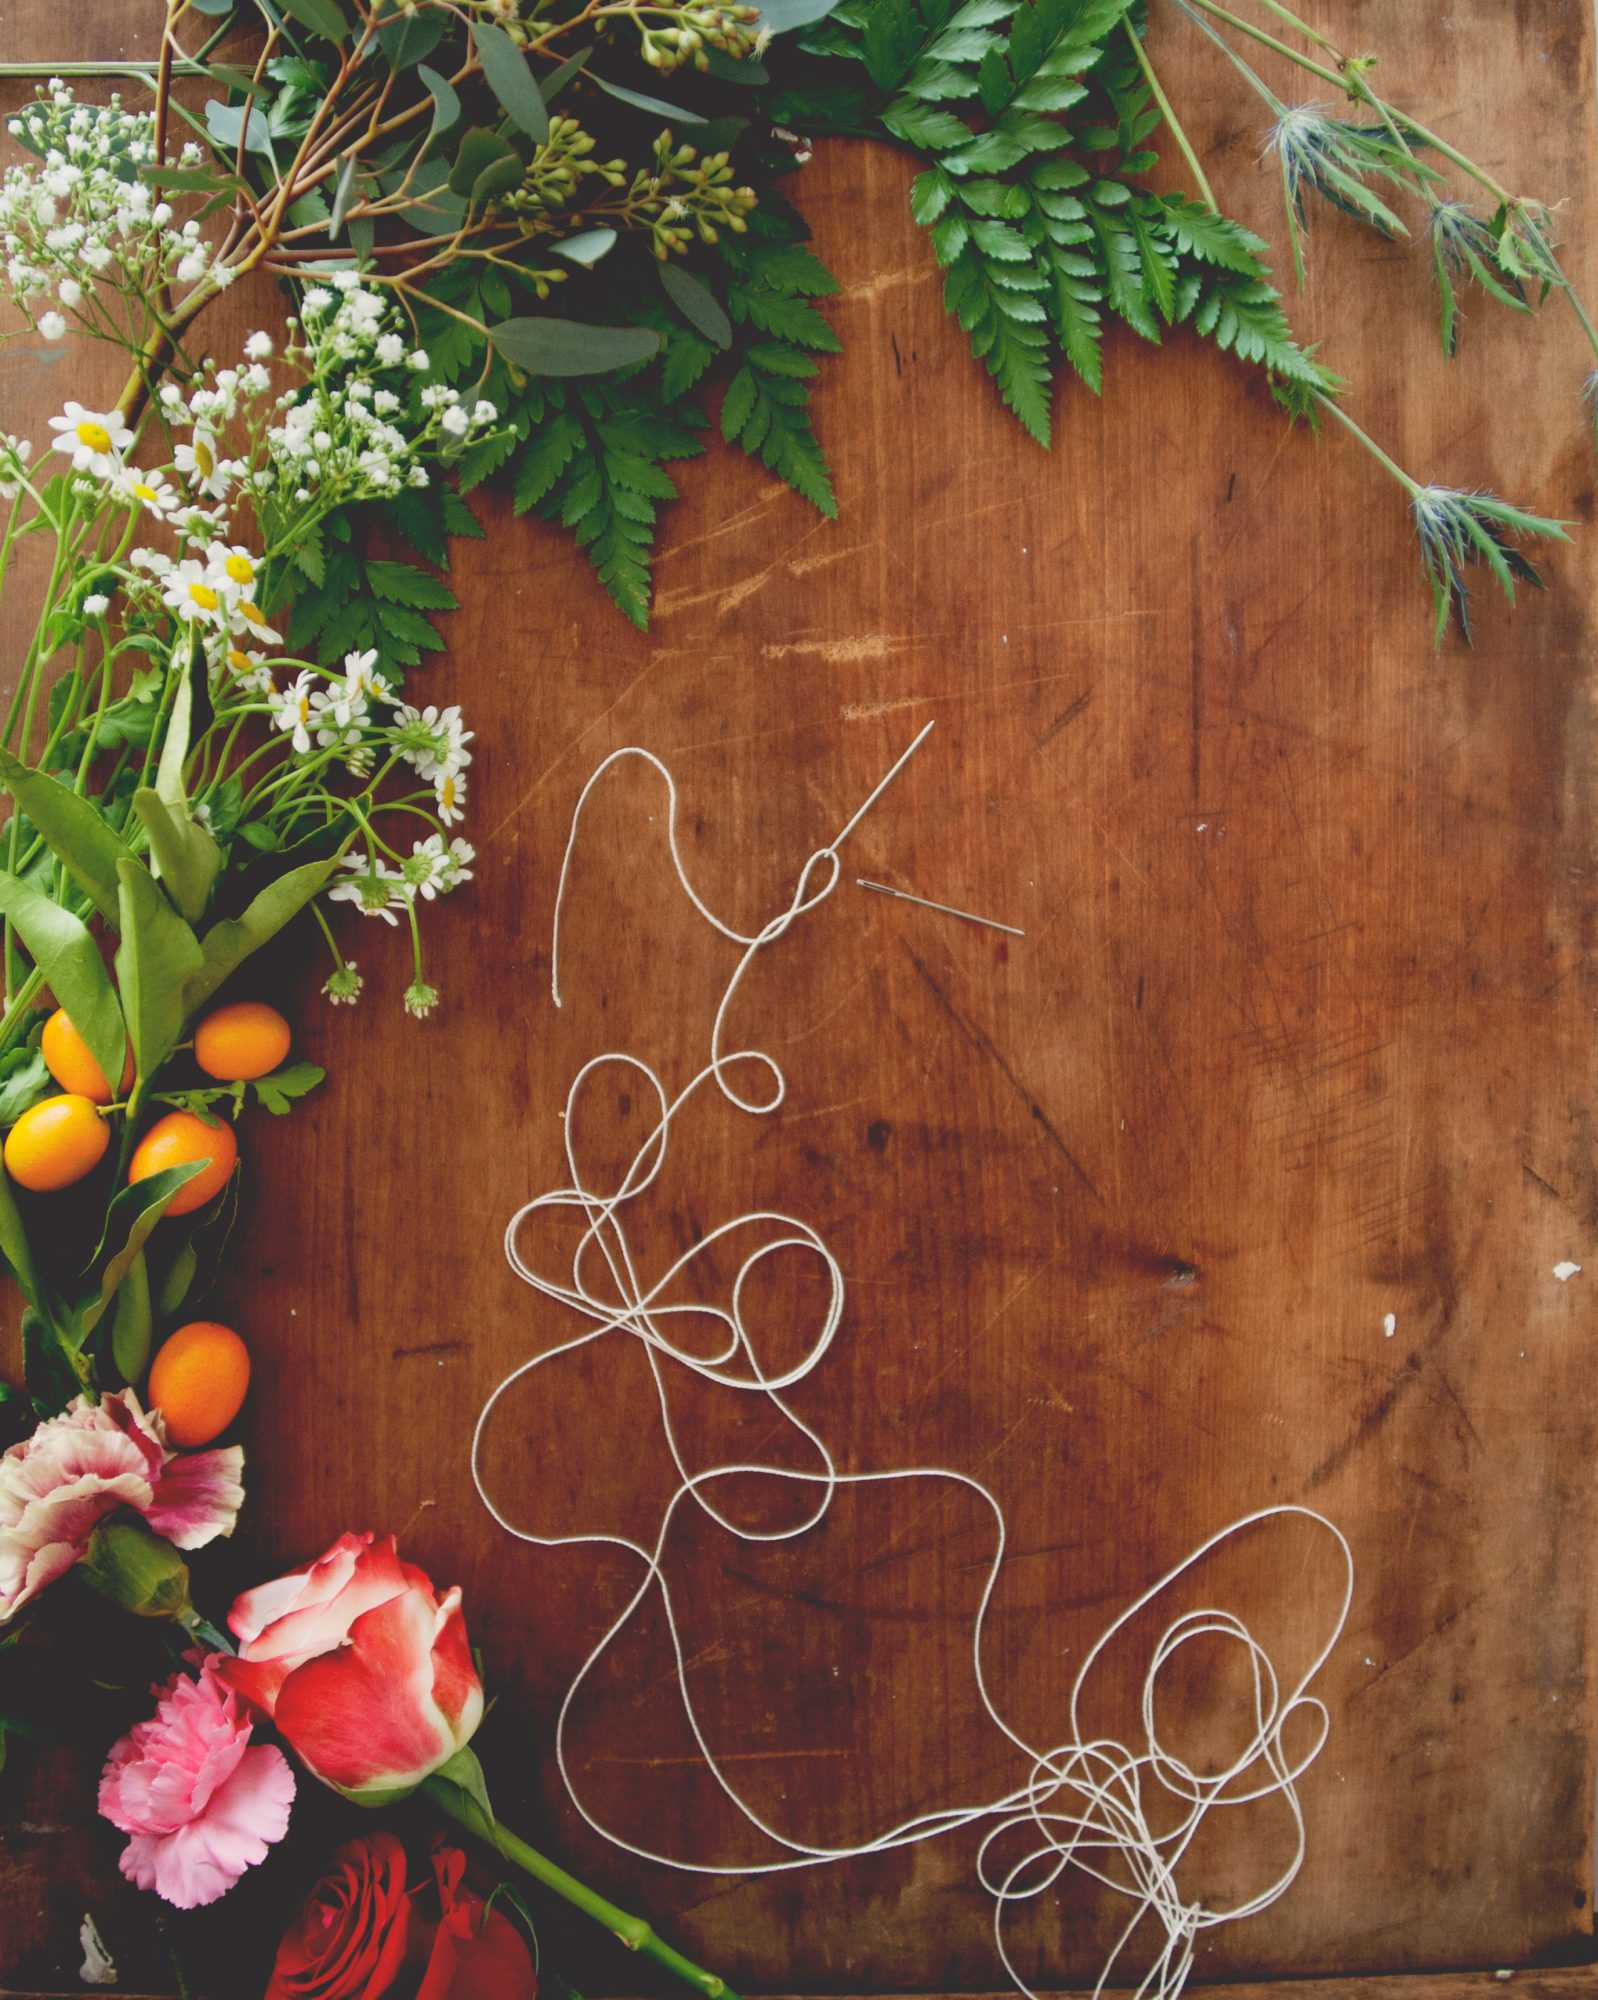 claire-thomas-bridal-shower-garden-diy-supplies-flowers-and-string-0814.jpg